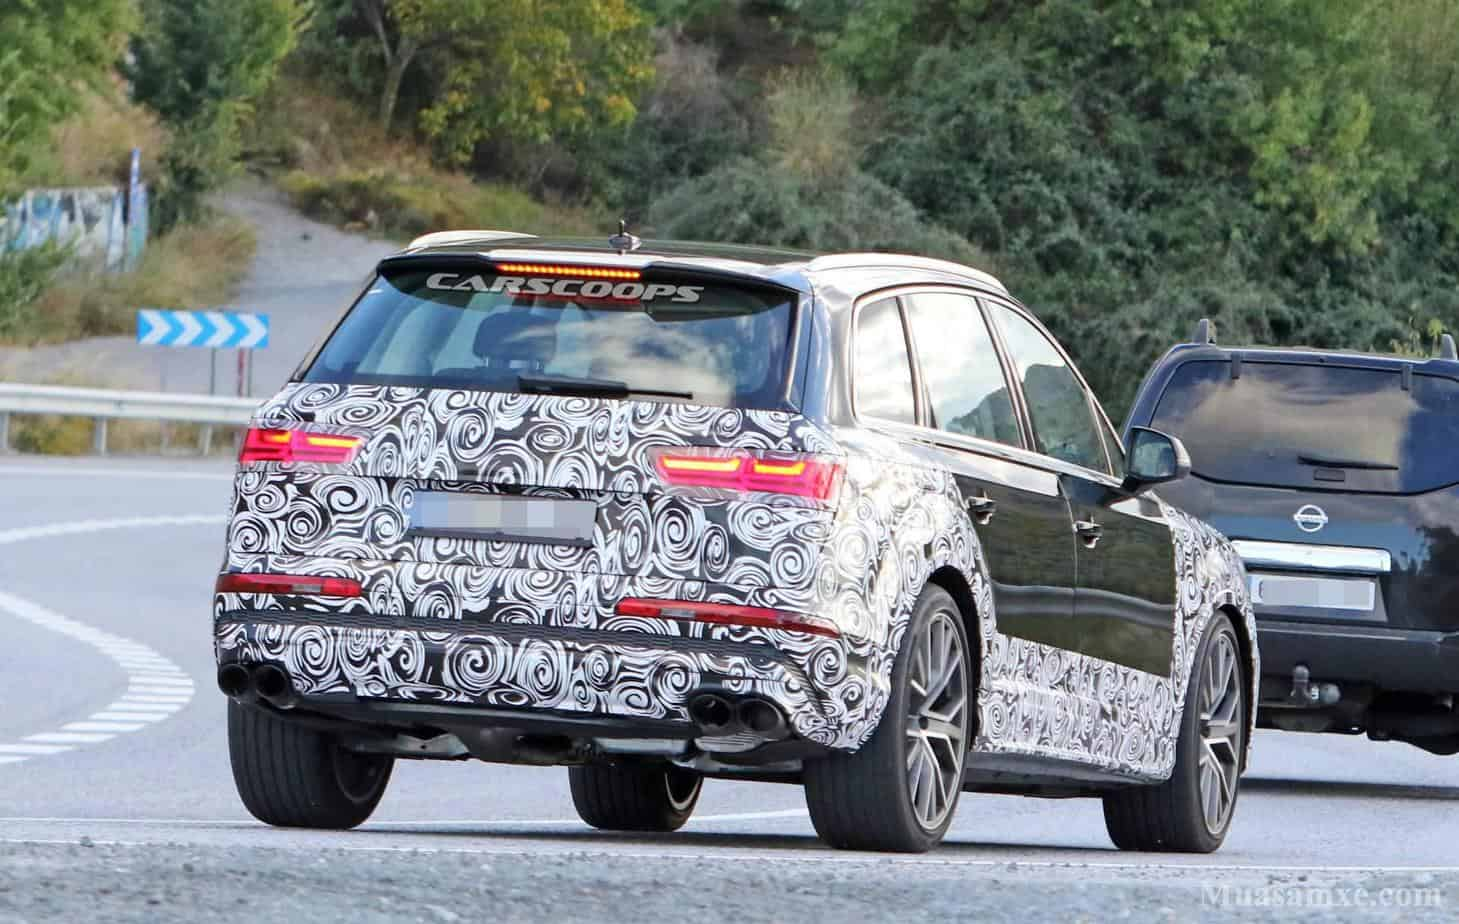 51 New Xe Audi Q7 2020 Price Design And Review